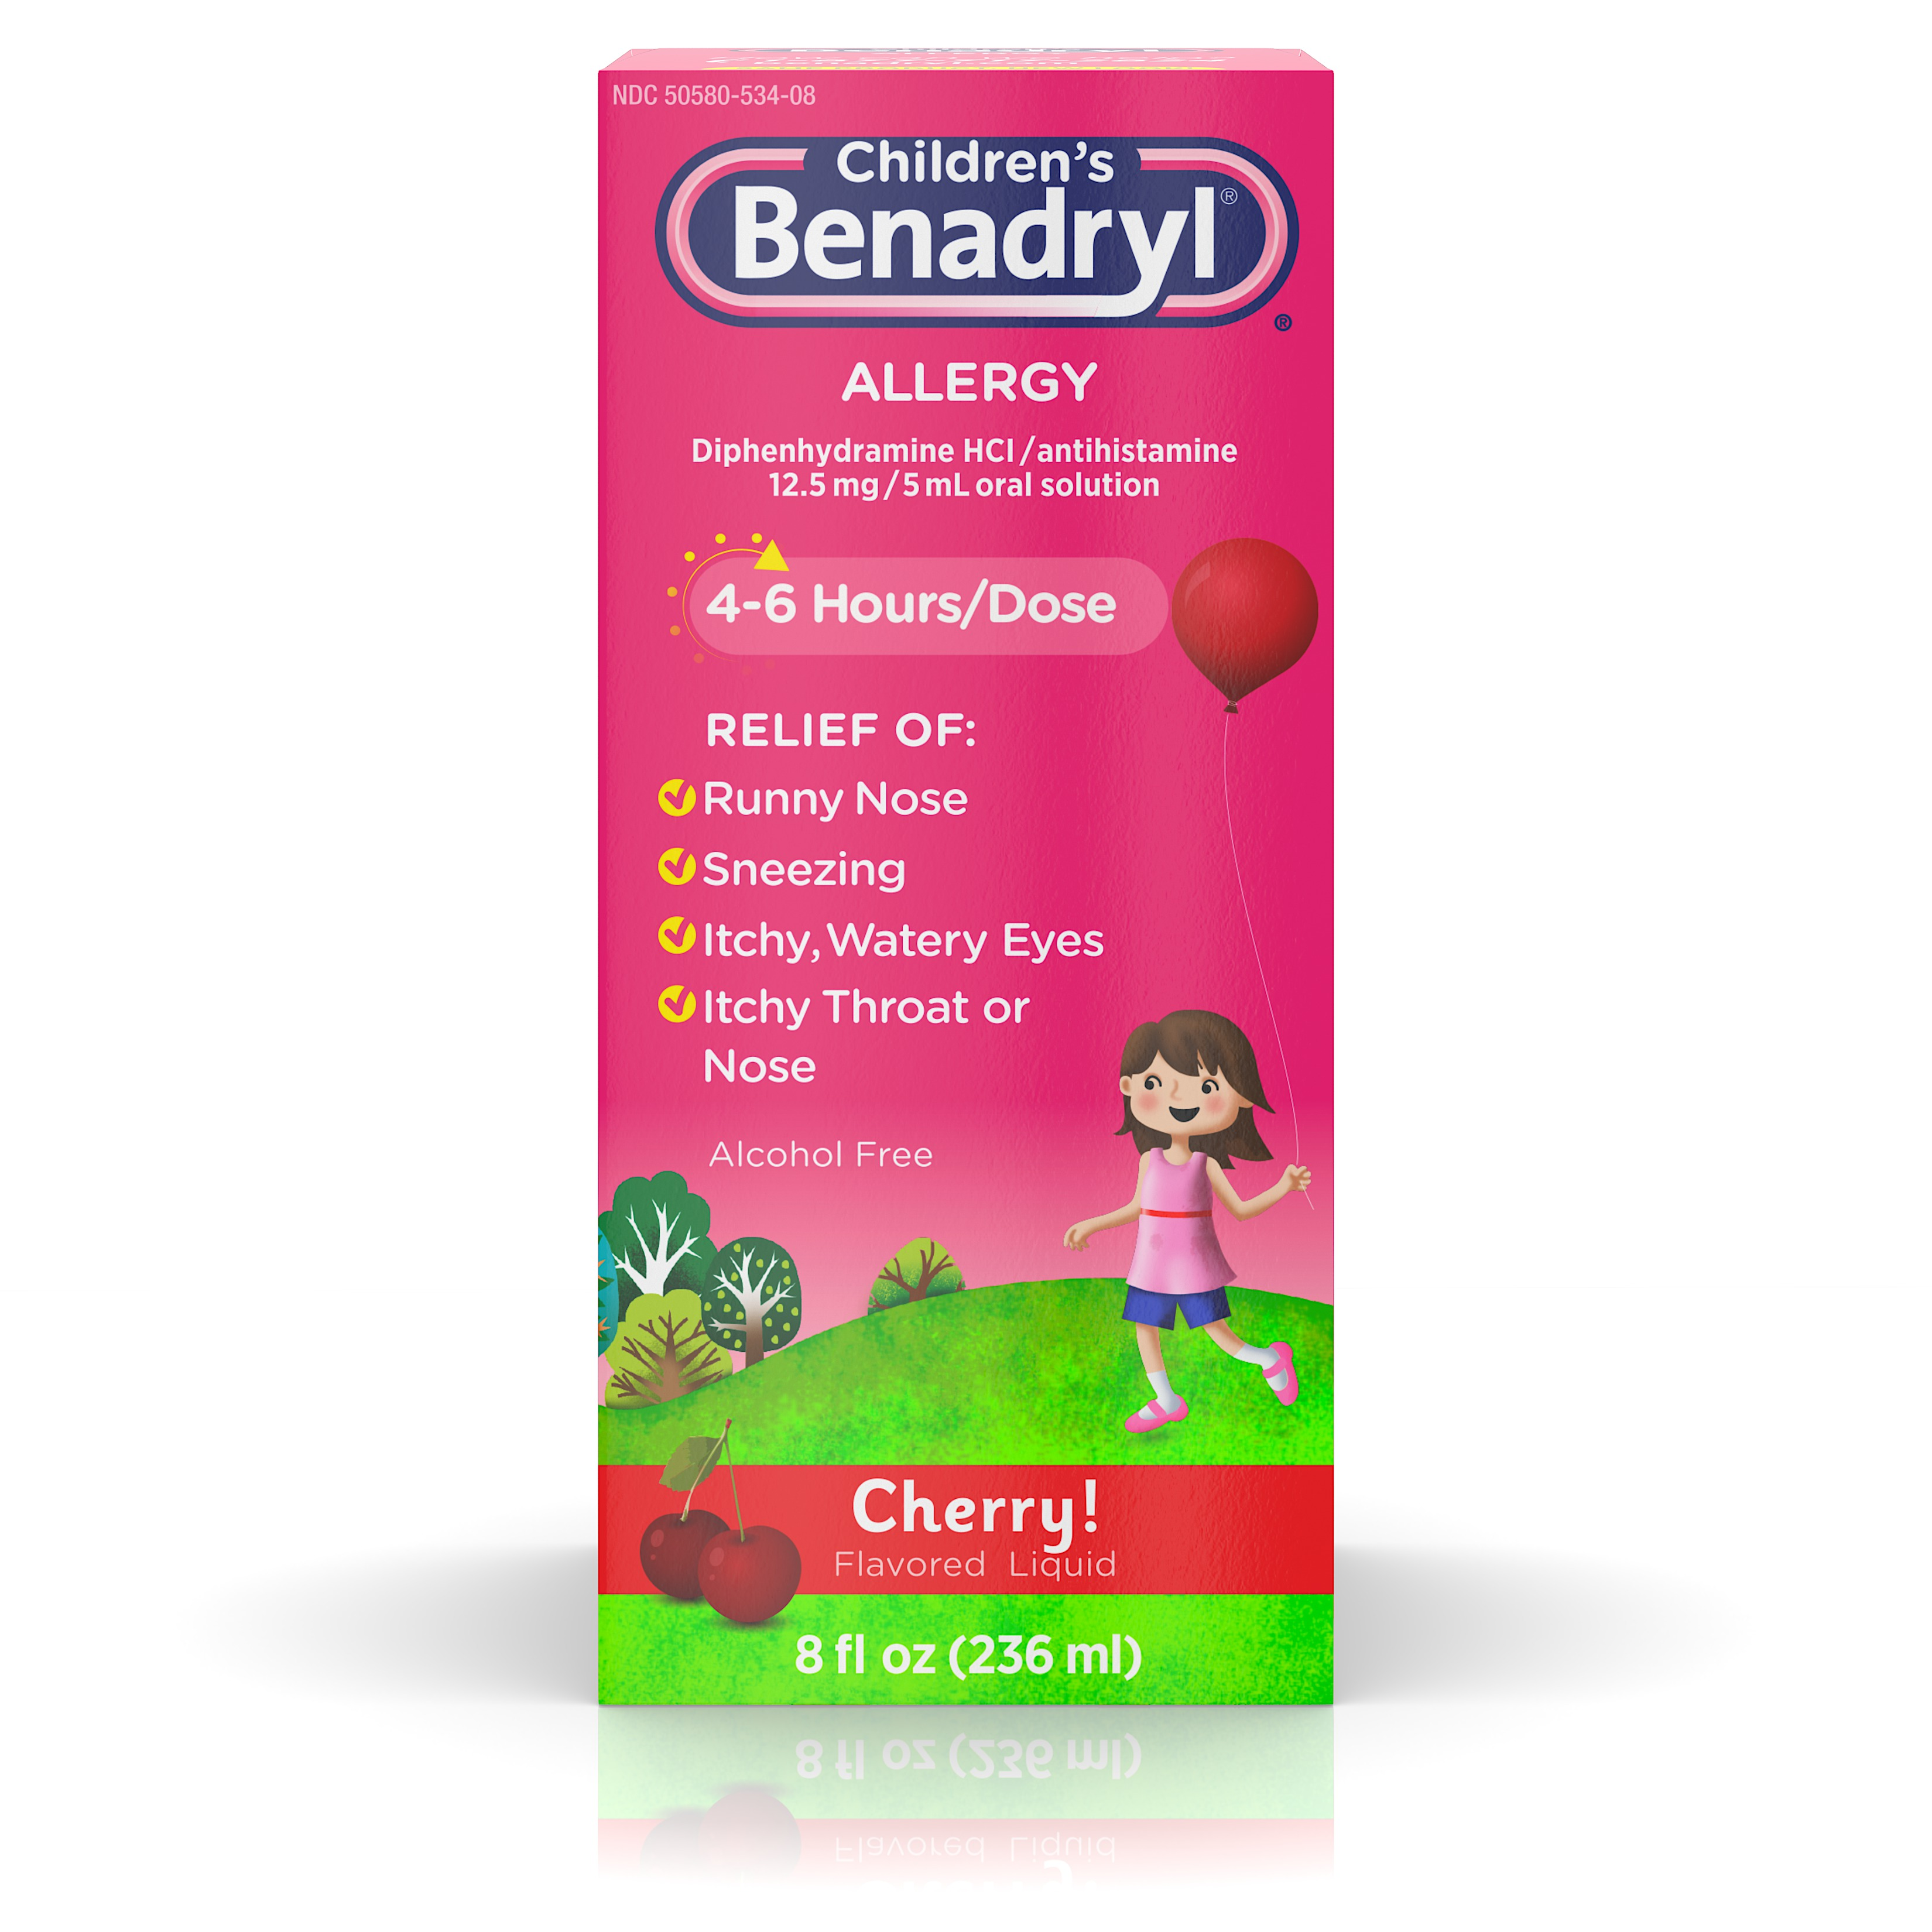 Children's Benadryl Antihistamine Allergy Liquid, Cherry, 8 fl. oz - Walmart.com at Walmart - Vision Center in Connersville, IN | Tuggl